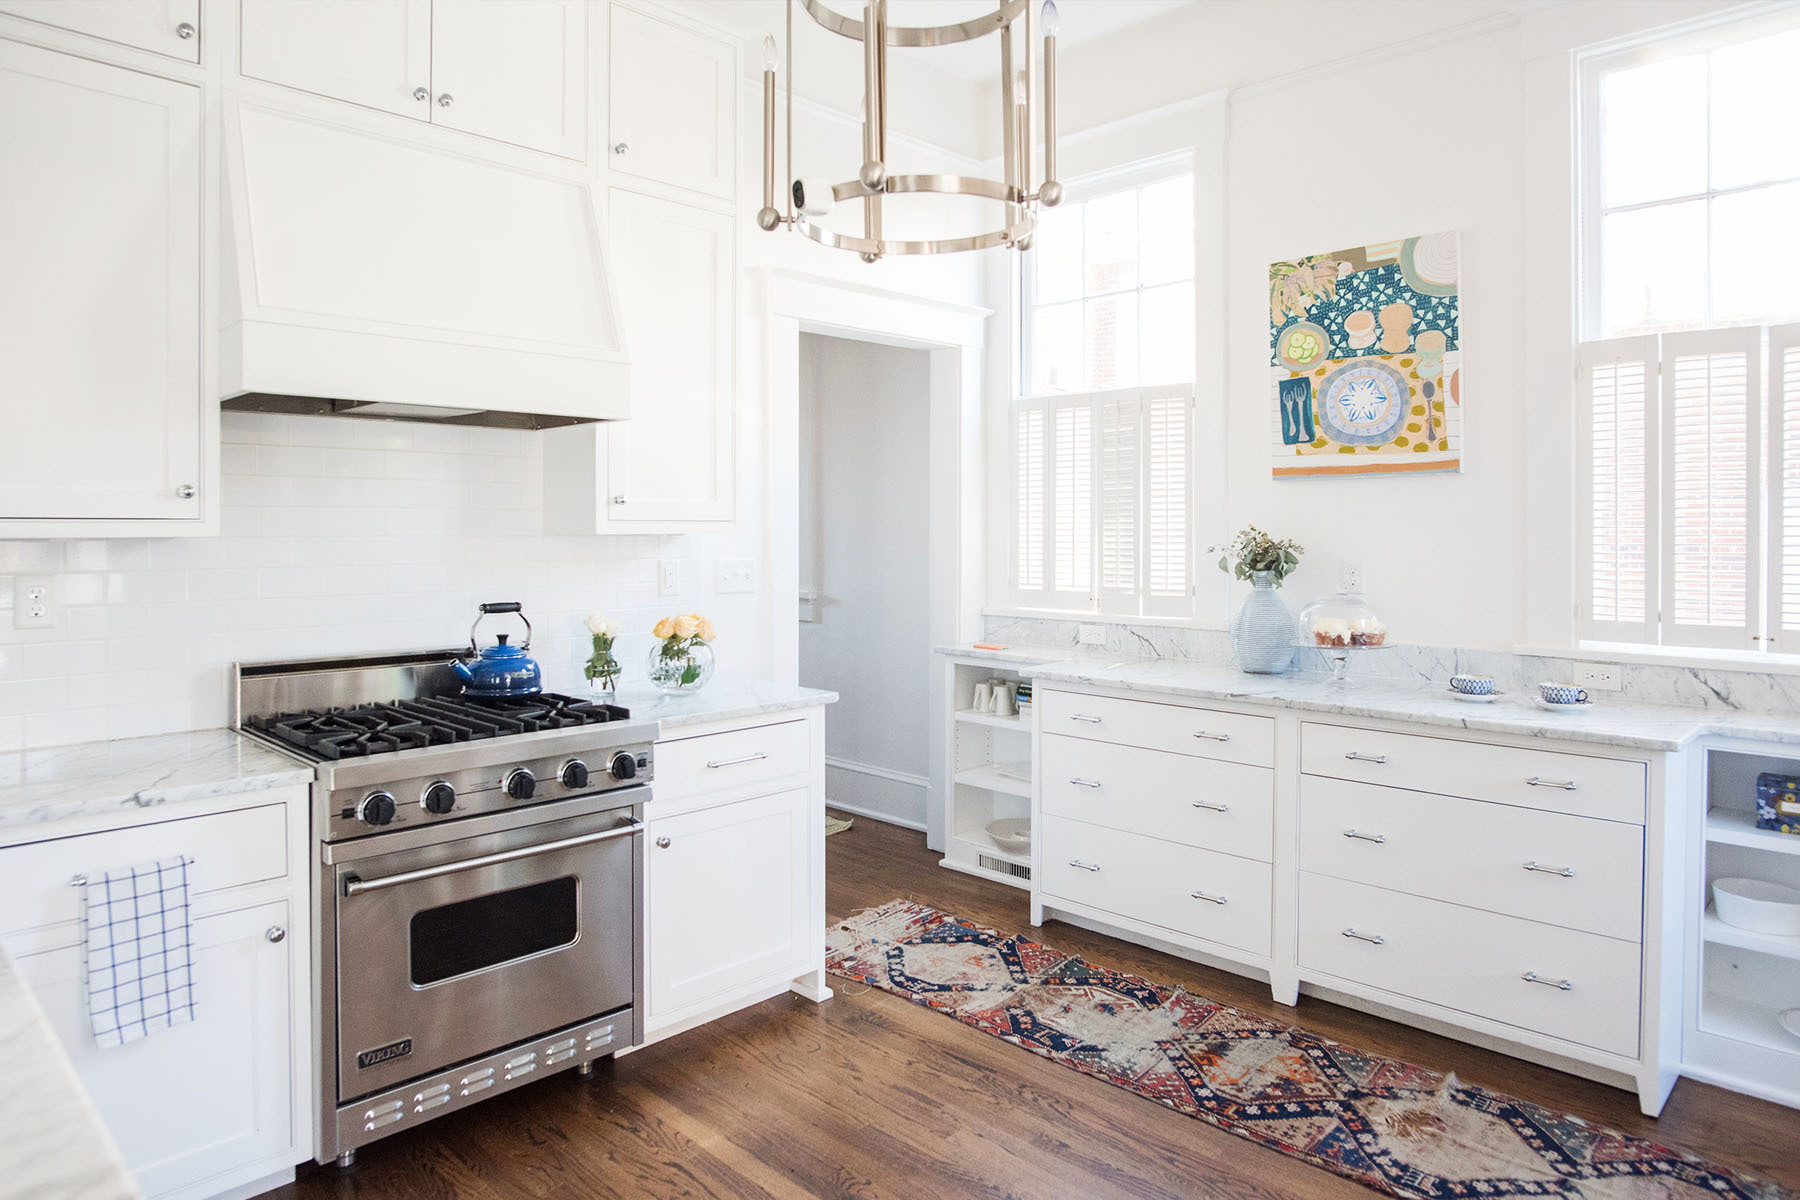 The open family kitchen isn't short on southern charm. Clutter Rug | Circa Chandelier | Homegoods Vases | Le Creuset Teapot | Waterworks Appliances | Lulie Wallace Artwork.